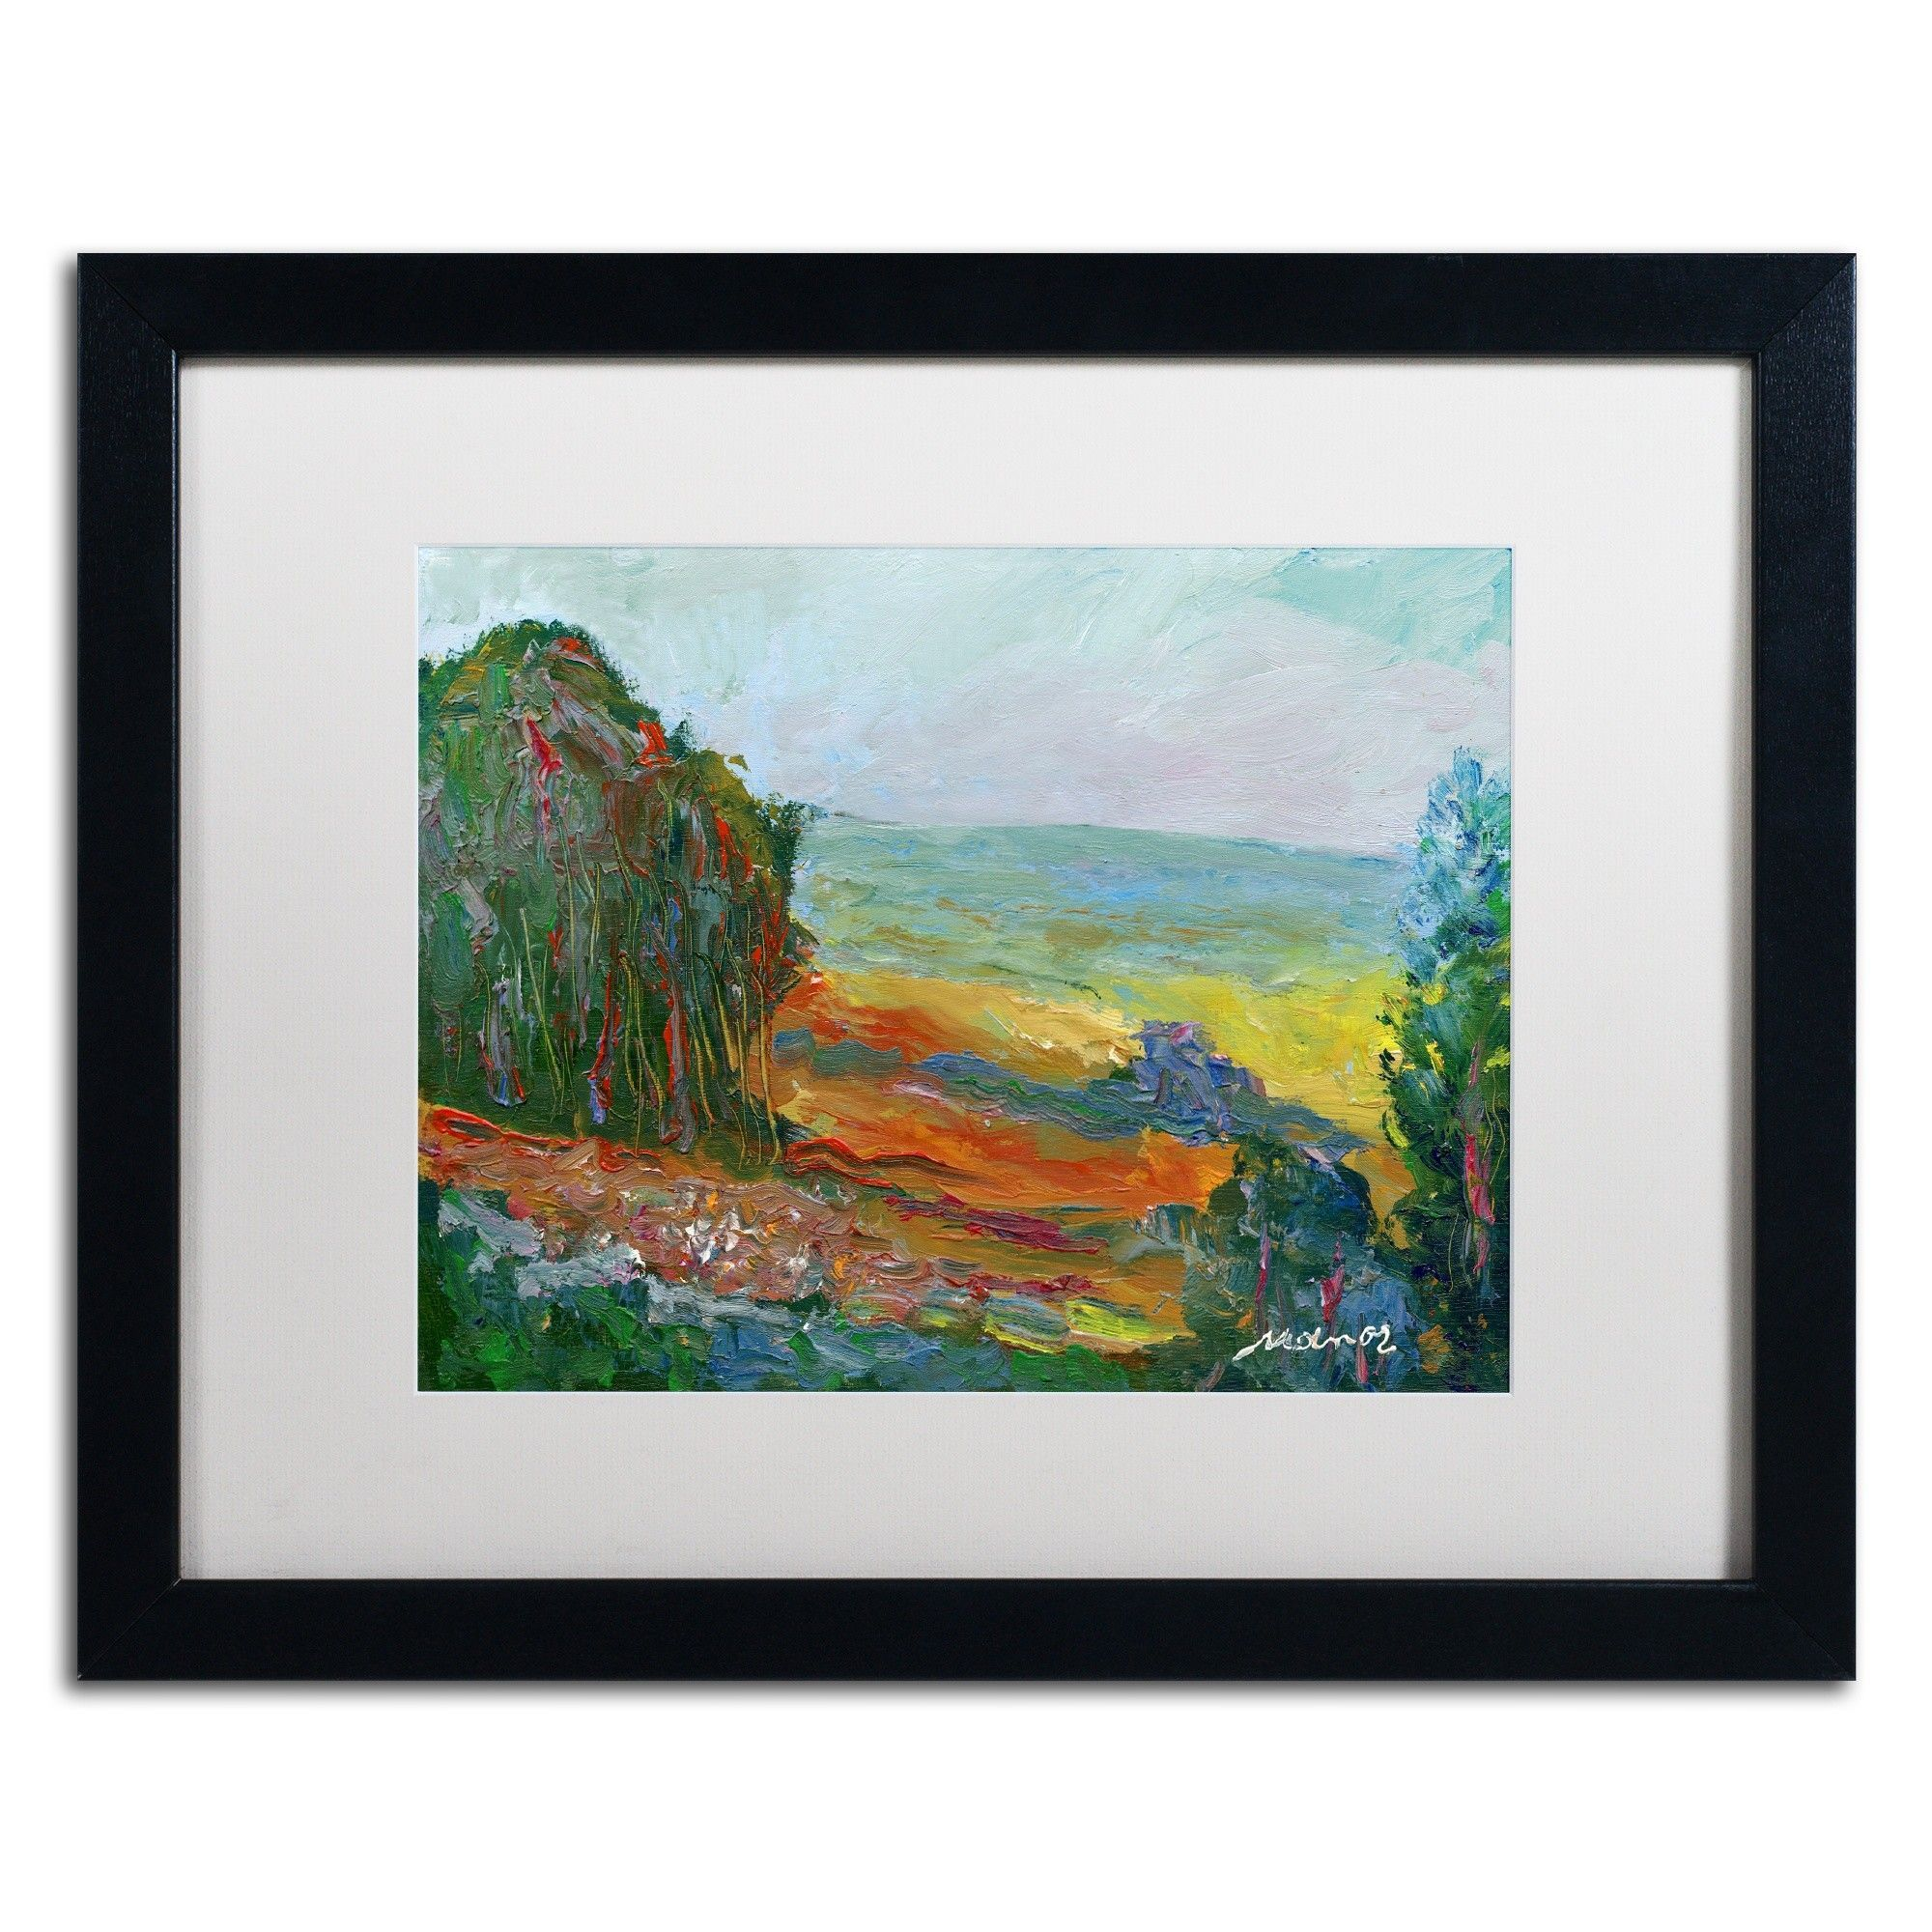 'Fall Fields' by Manor Shadian Framed Painting Print